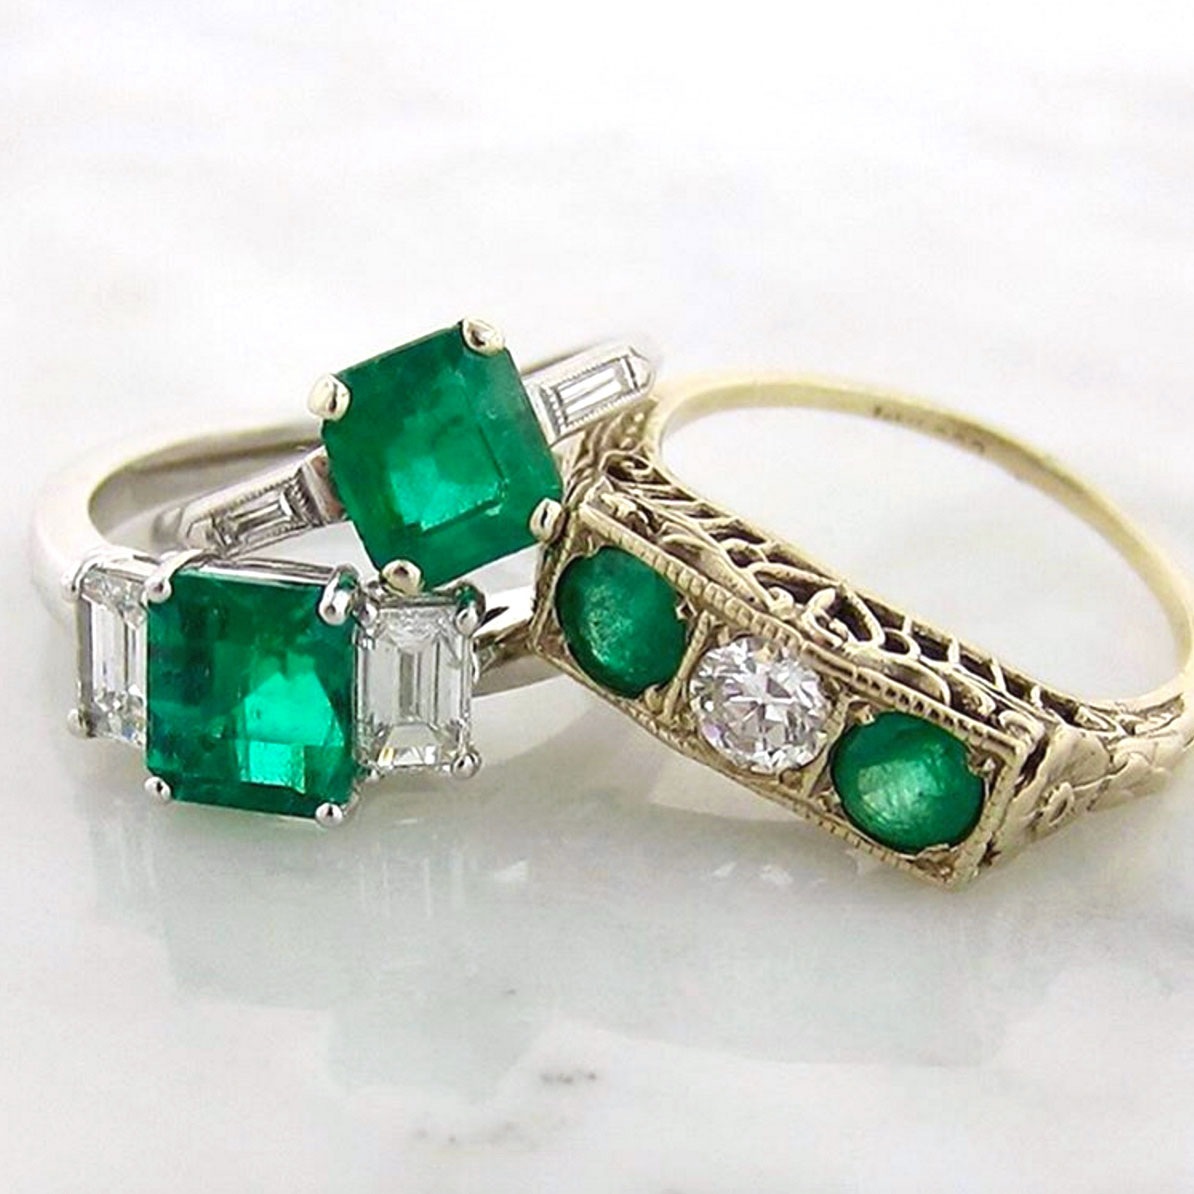 Doyle & Doyle vintage emerald and diamond rings